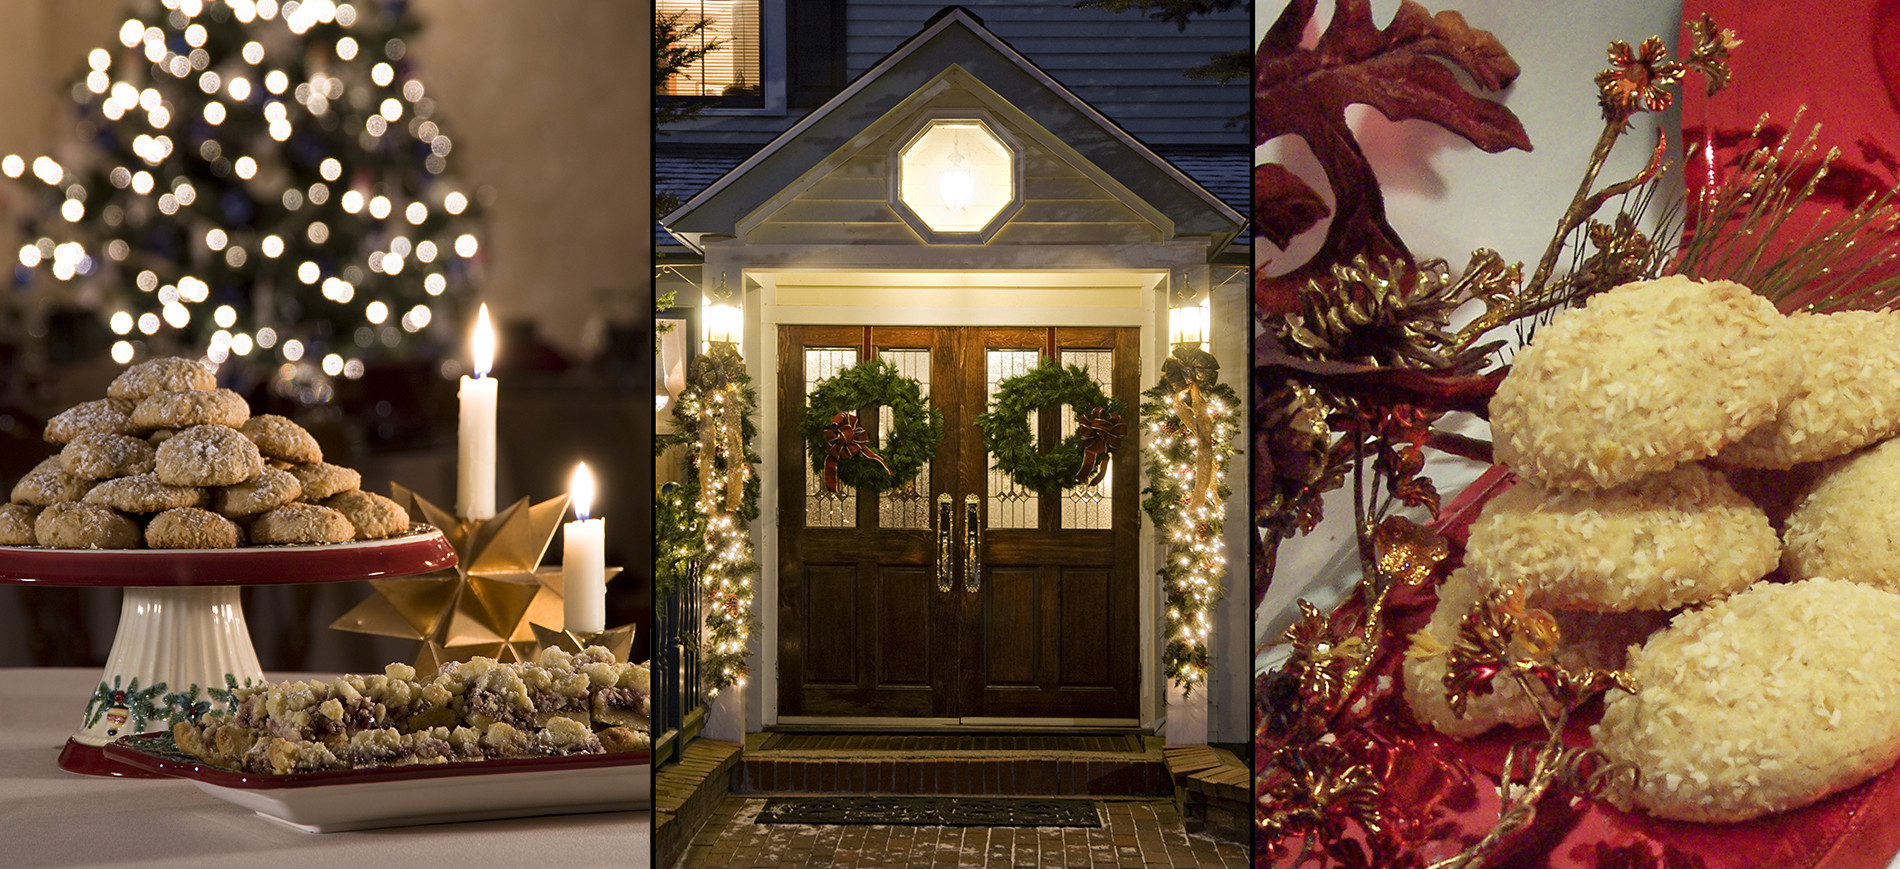 Cookies on stand & plate with candle, gold star, Xmas tree in background, Entrance doors to inn with holiday wreaths & lights, closeup of cookies on red cloth